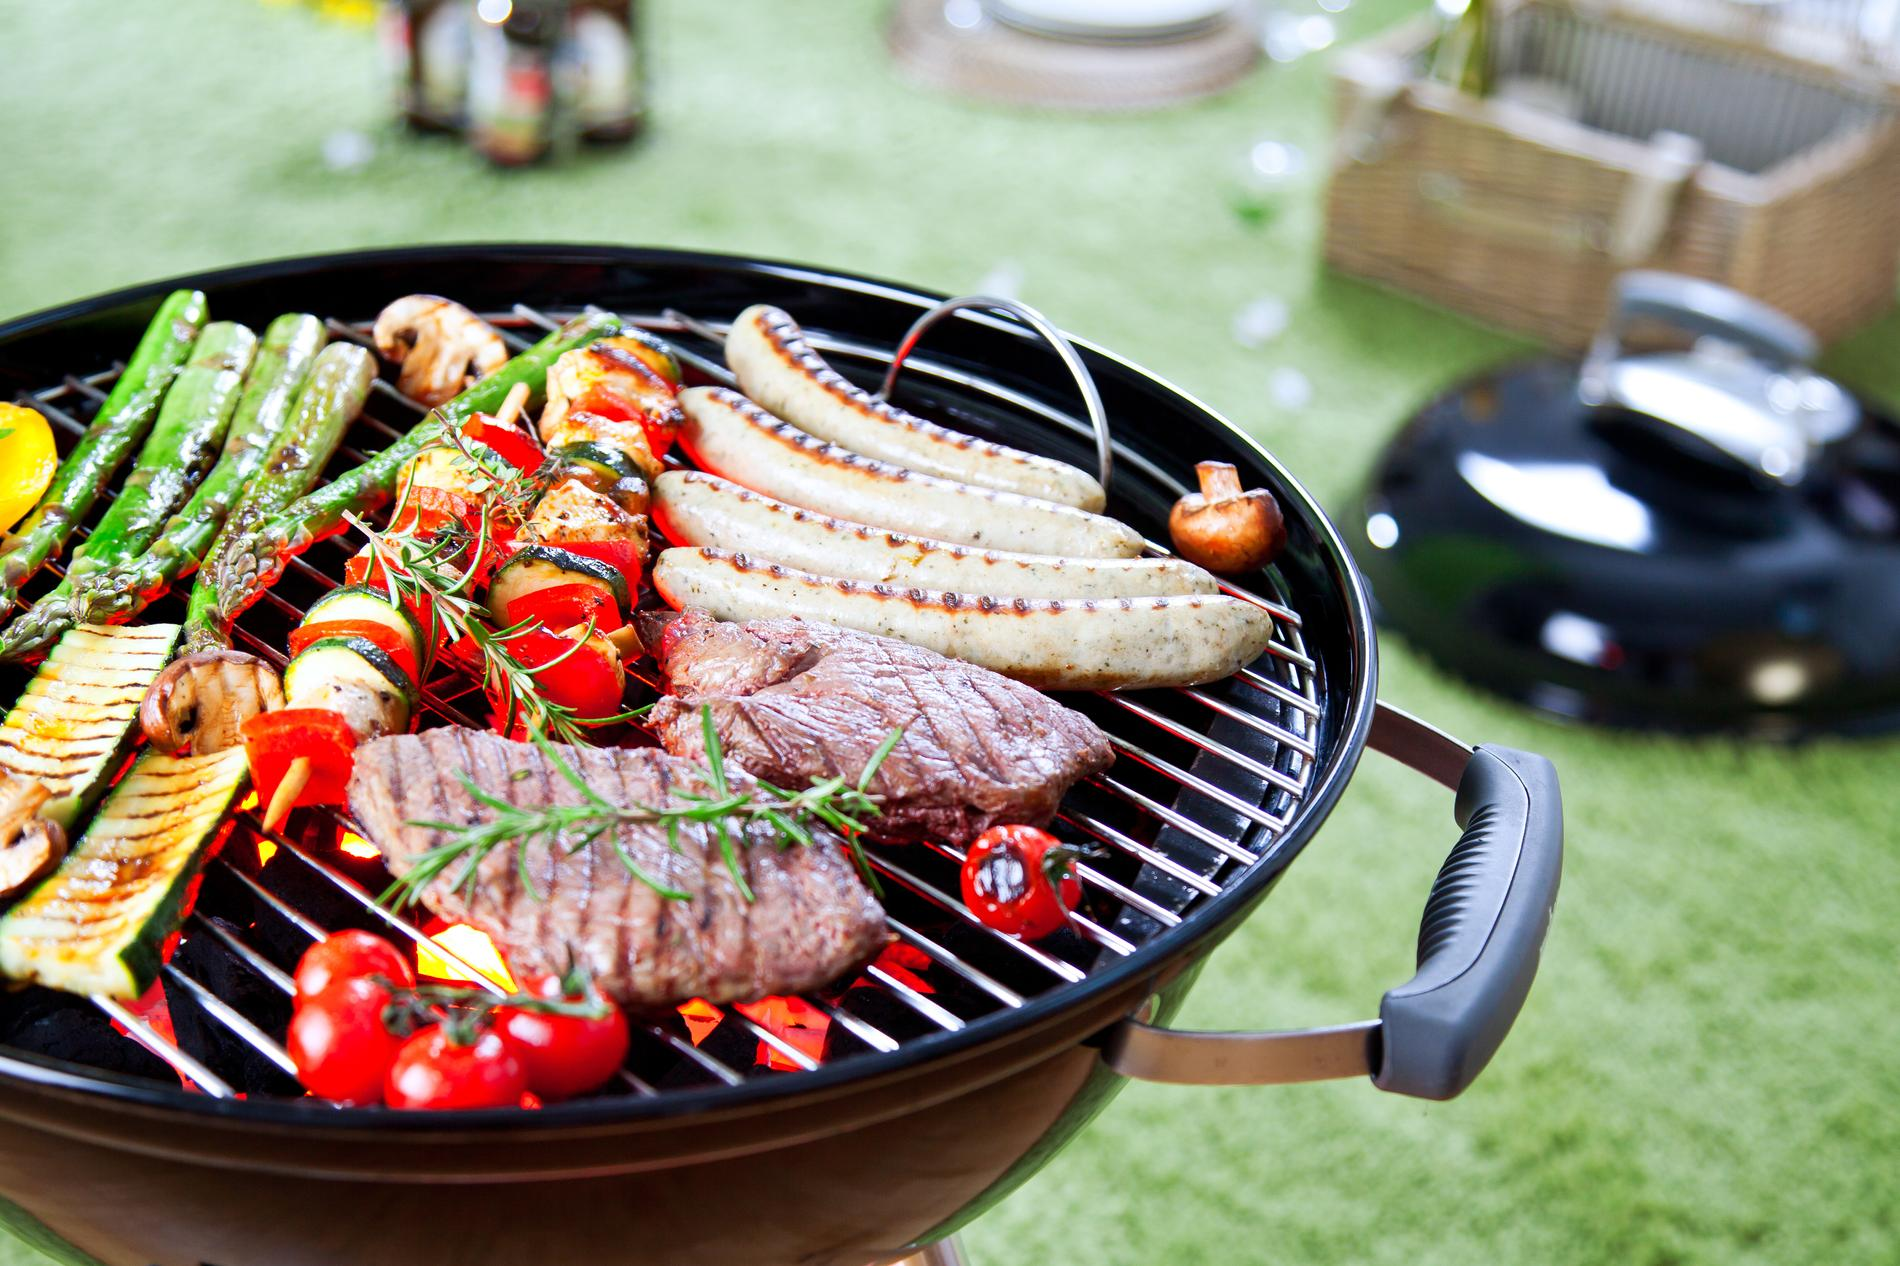 Accompagnement barbecue : Recettes faciles et rapides